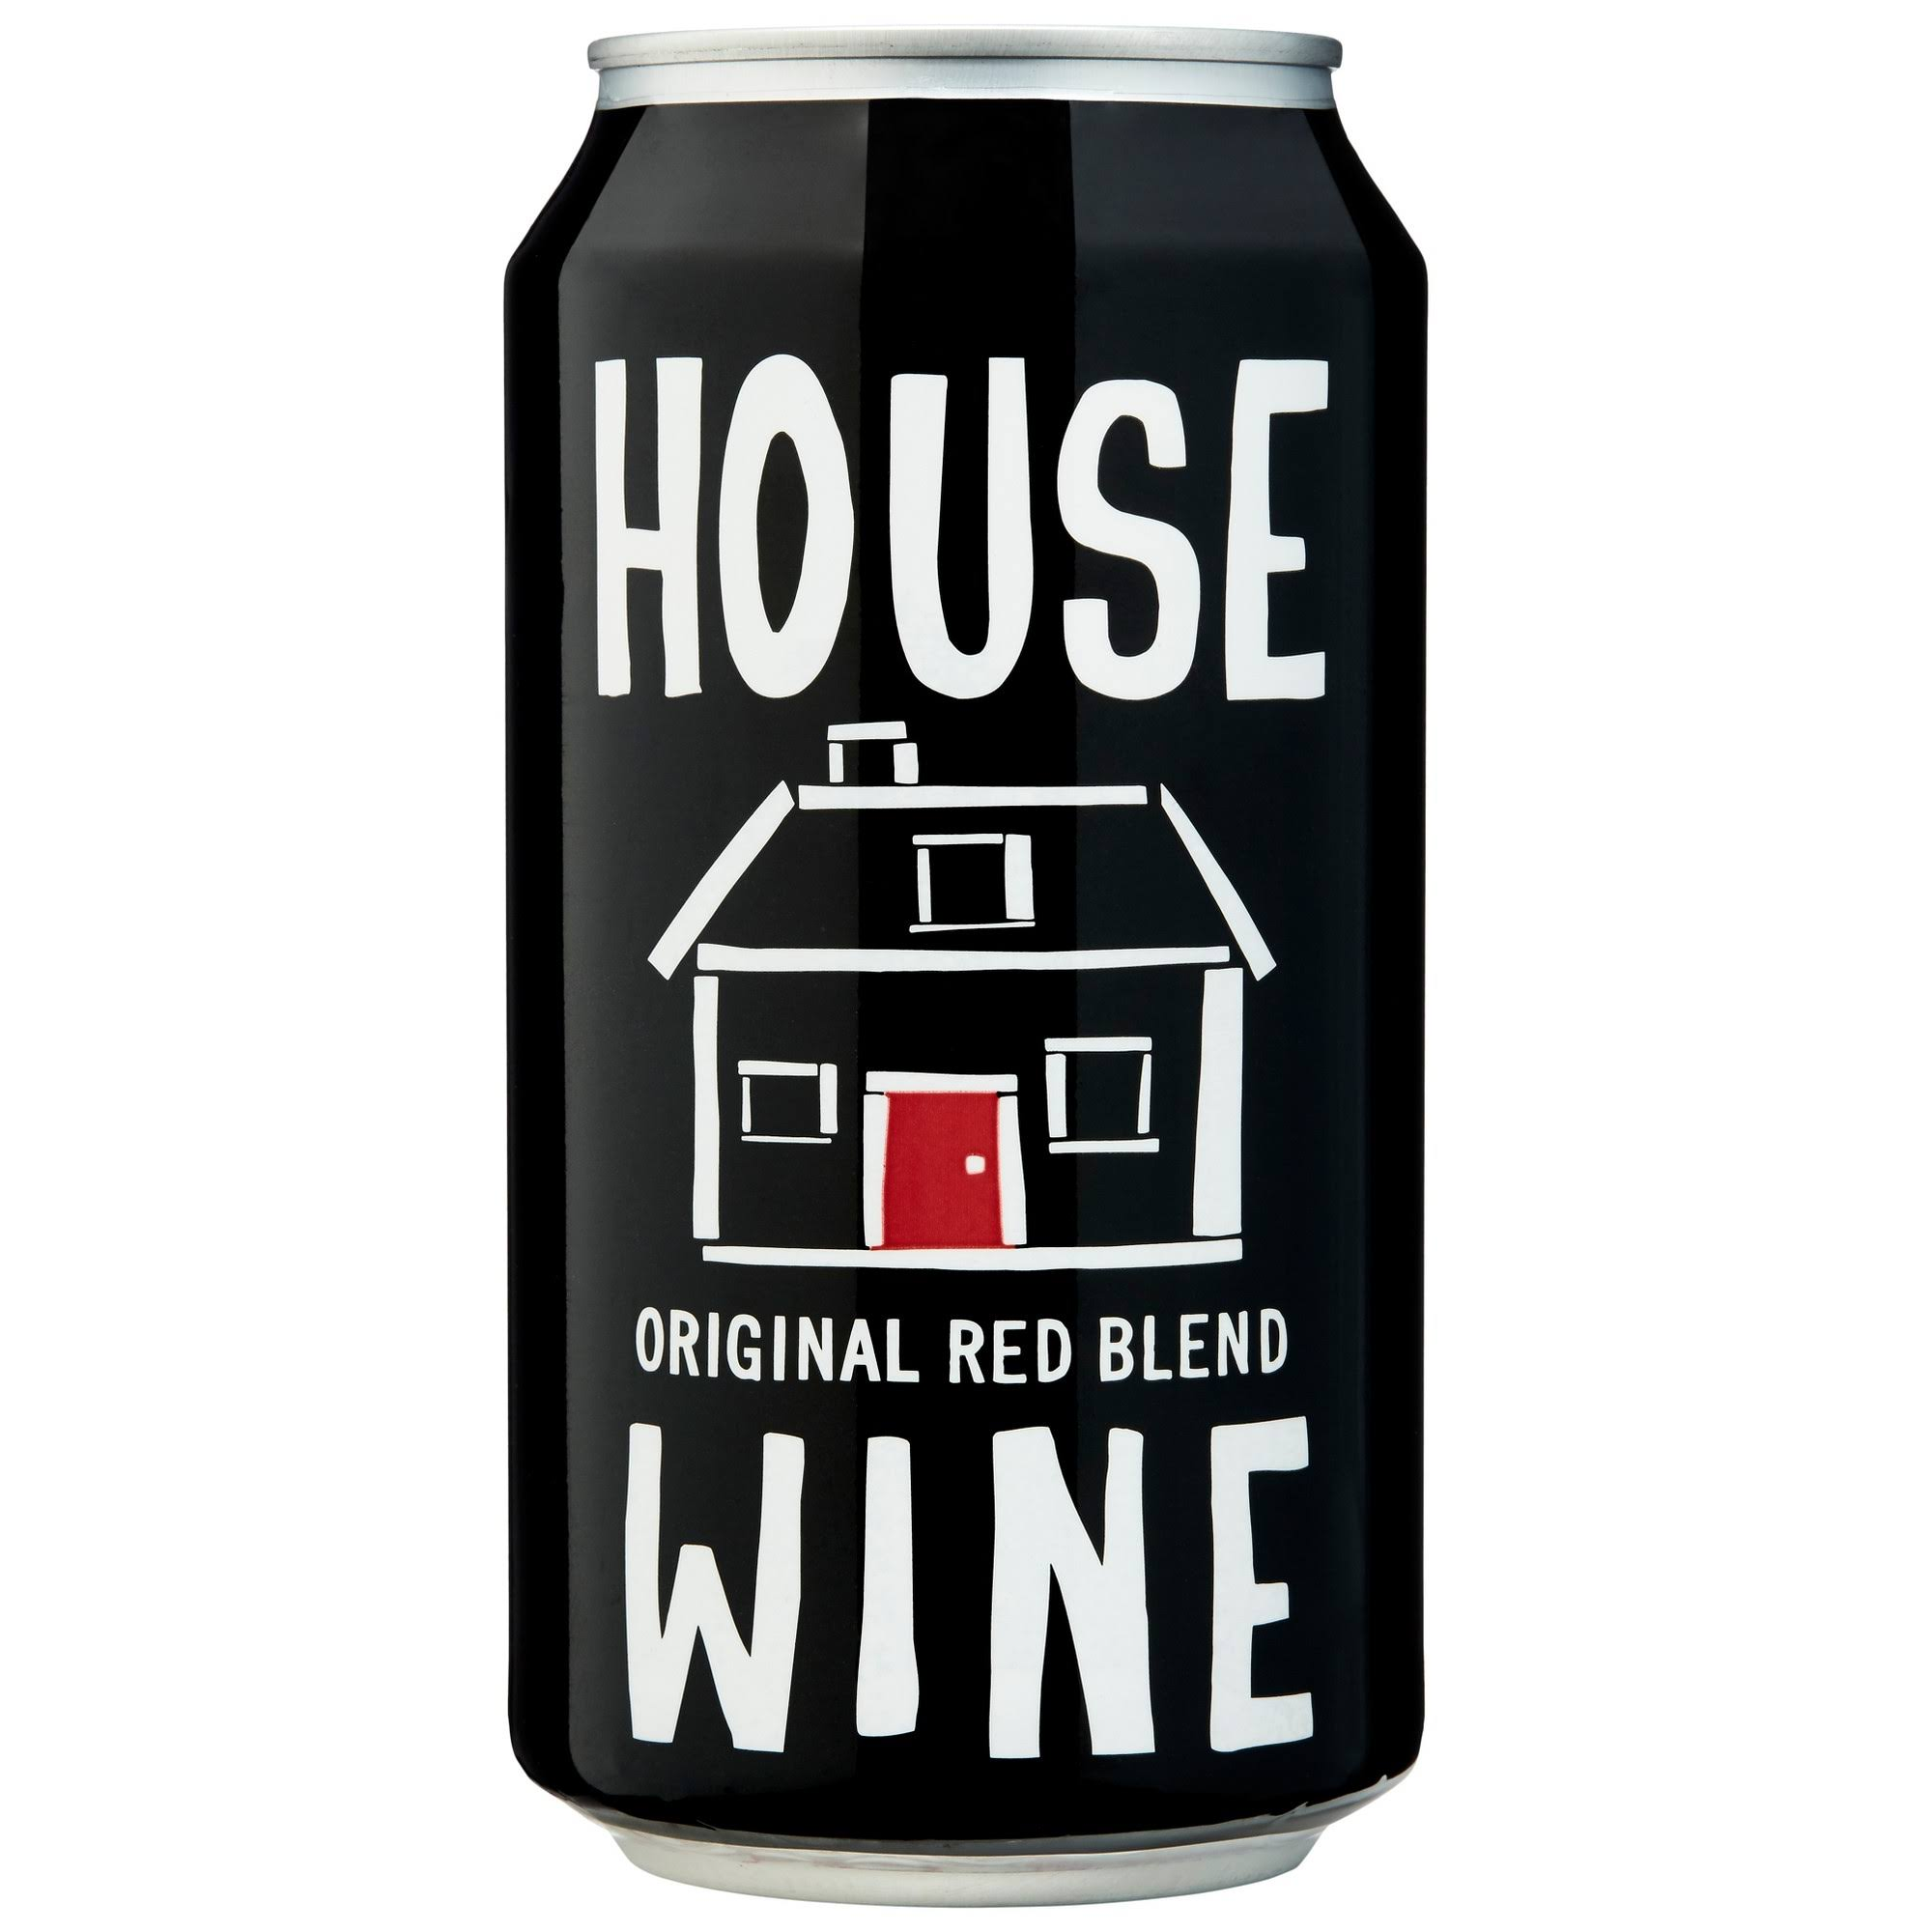 House Wine Red Blend, Original - 375 ml